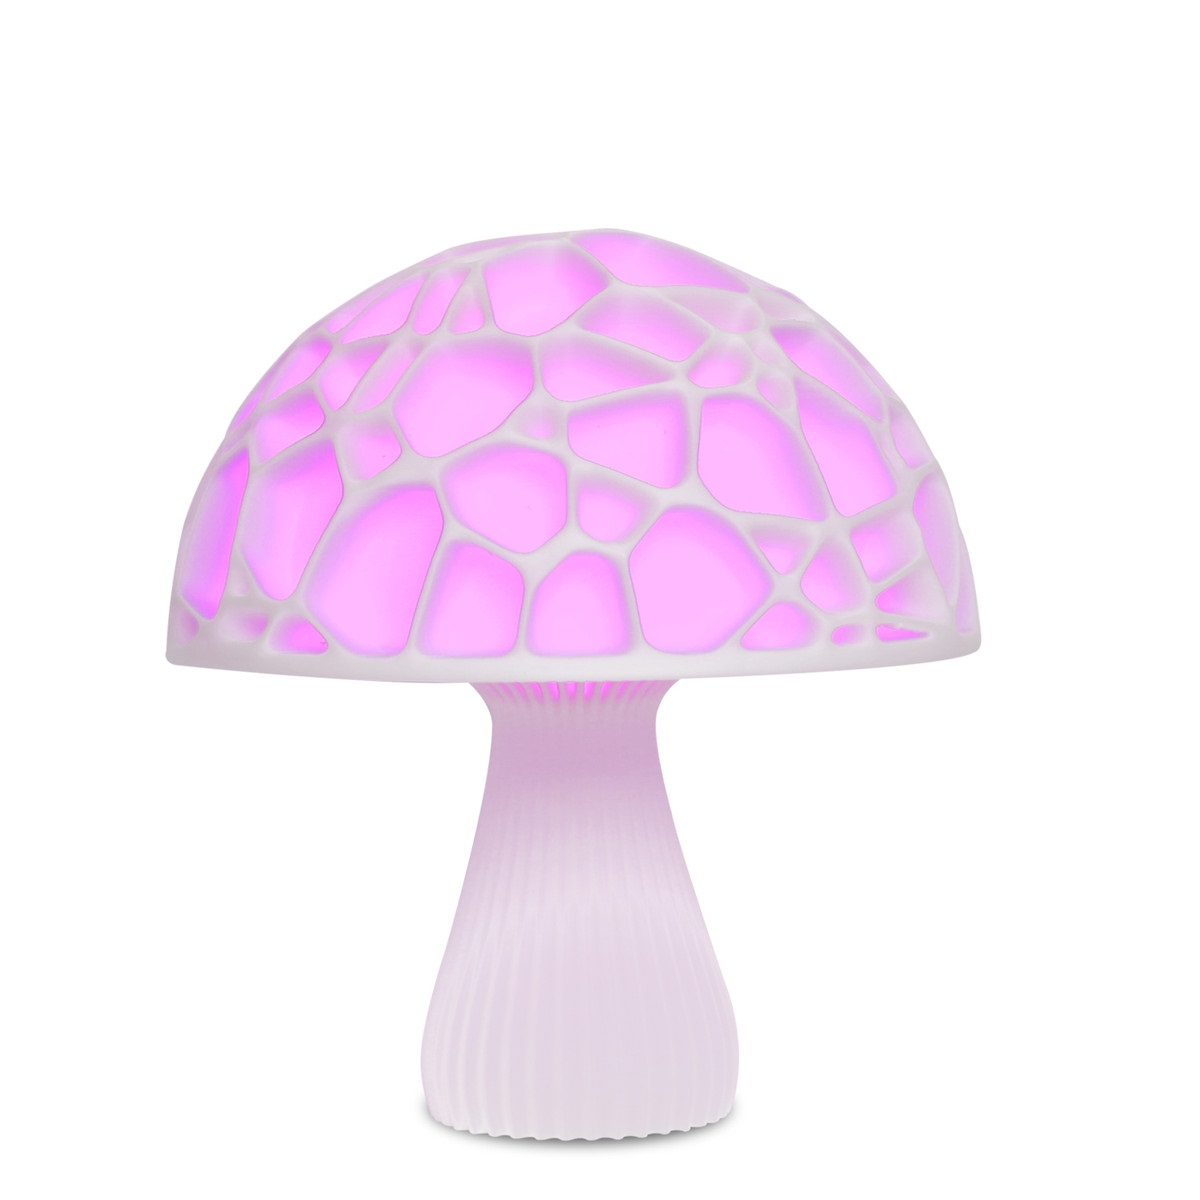 Usb Rechargeable 3D Printed Mushroom Light 16Colors Remote 3D Night Lamp For Light Decoration Lamp Night Light Desk Gift Lamp